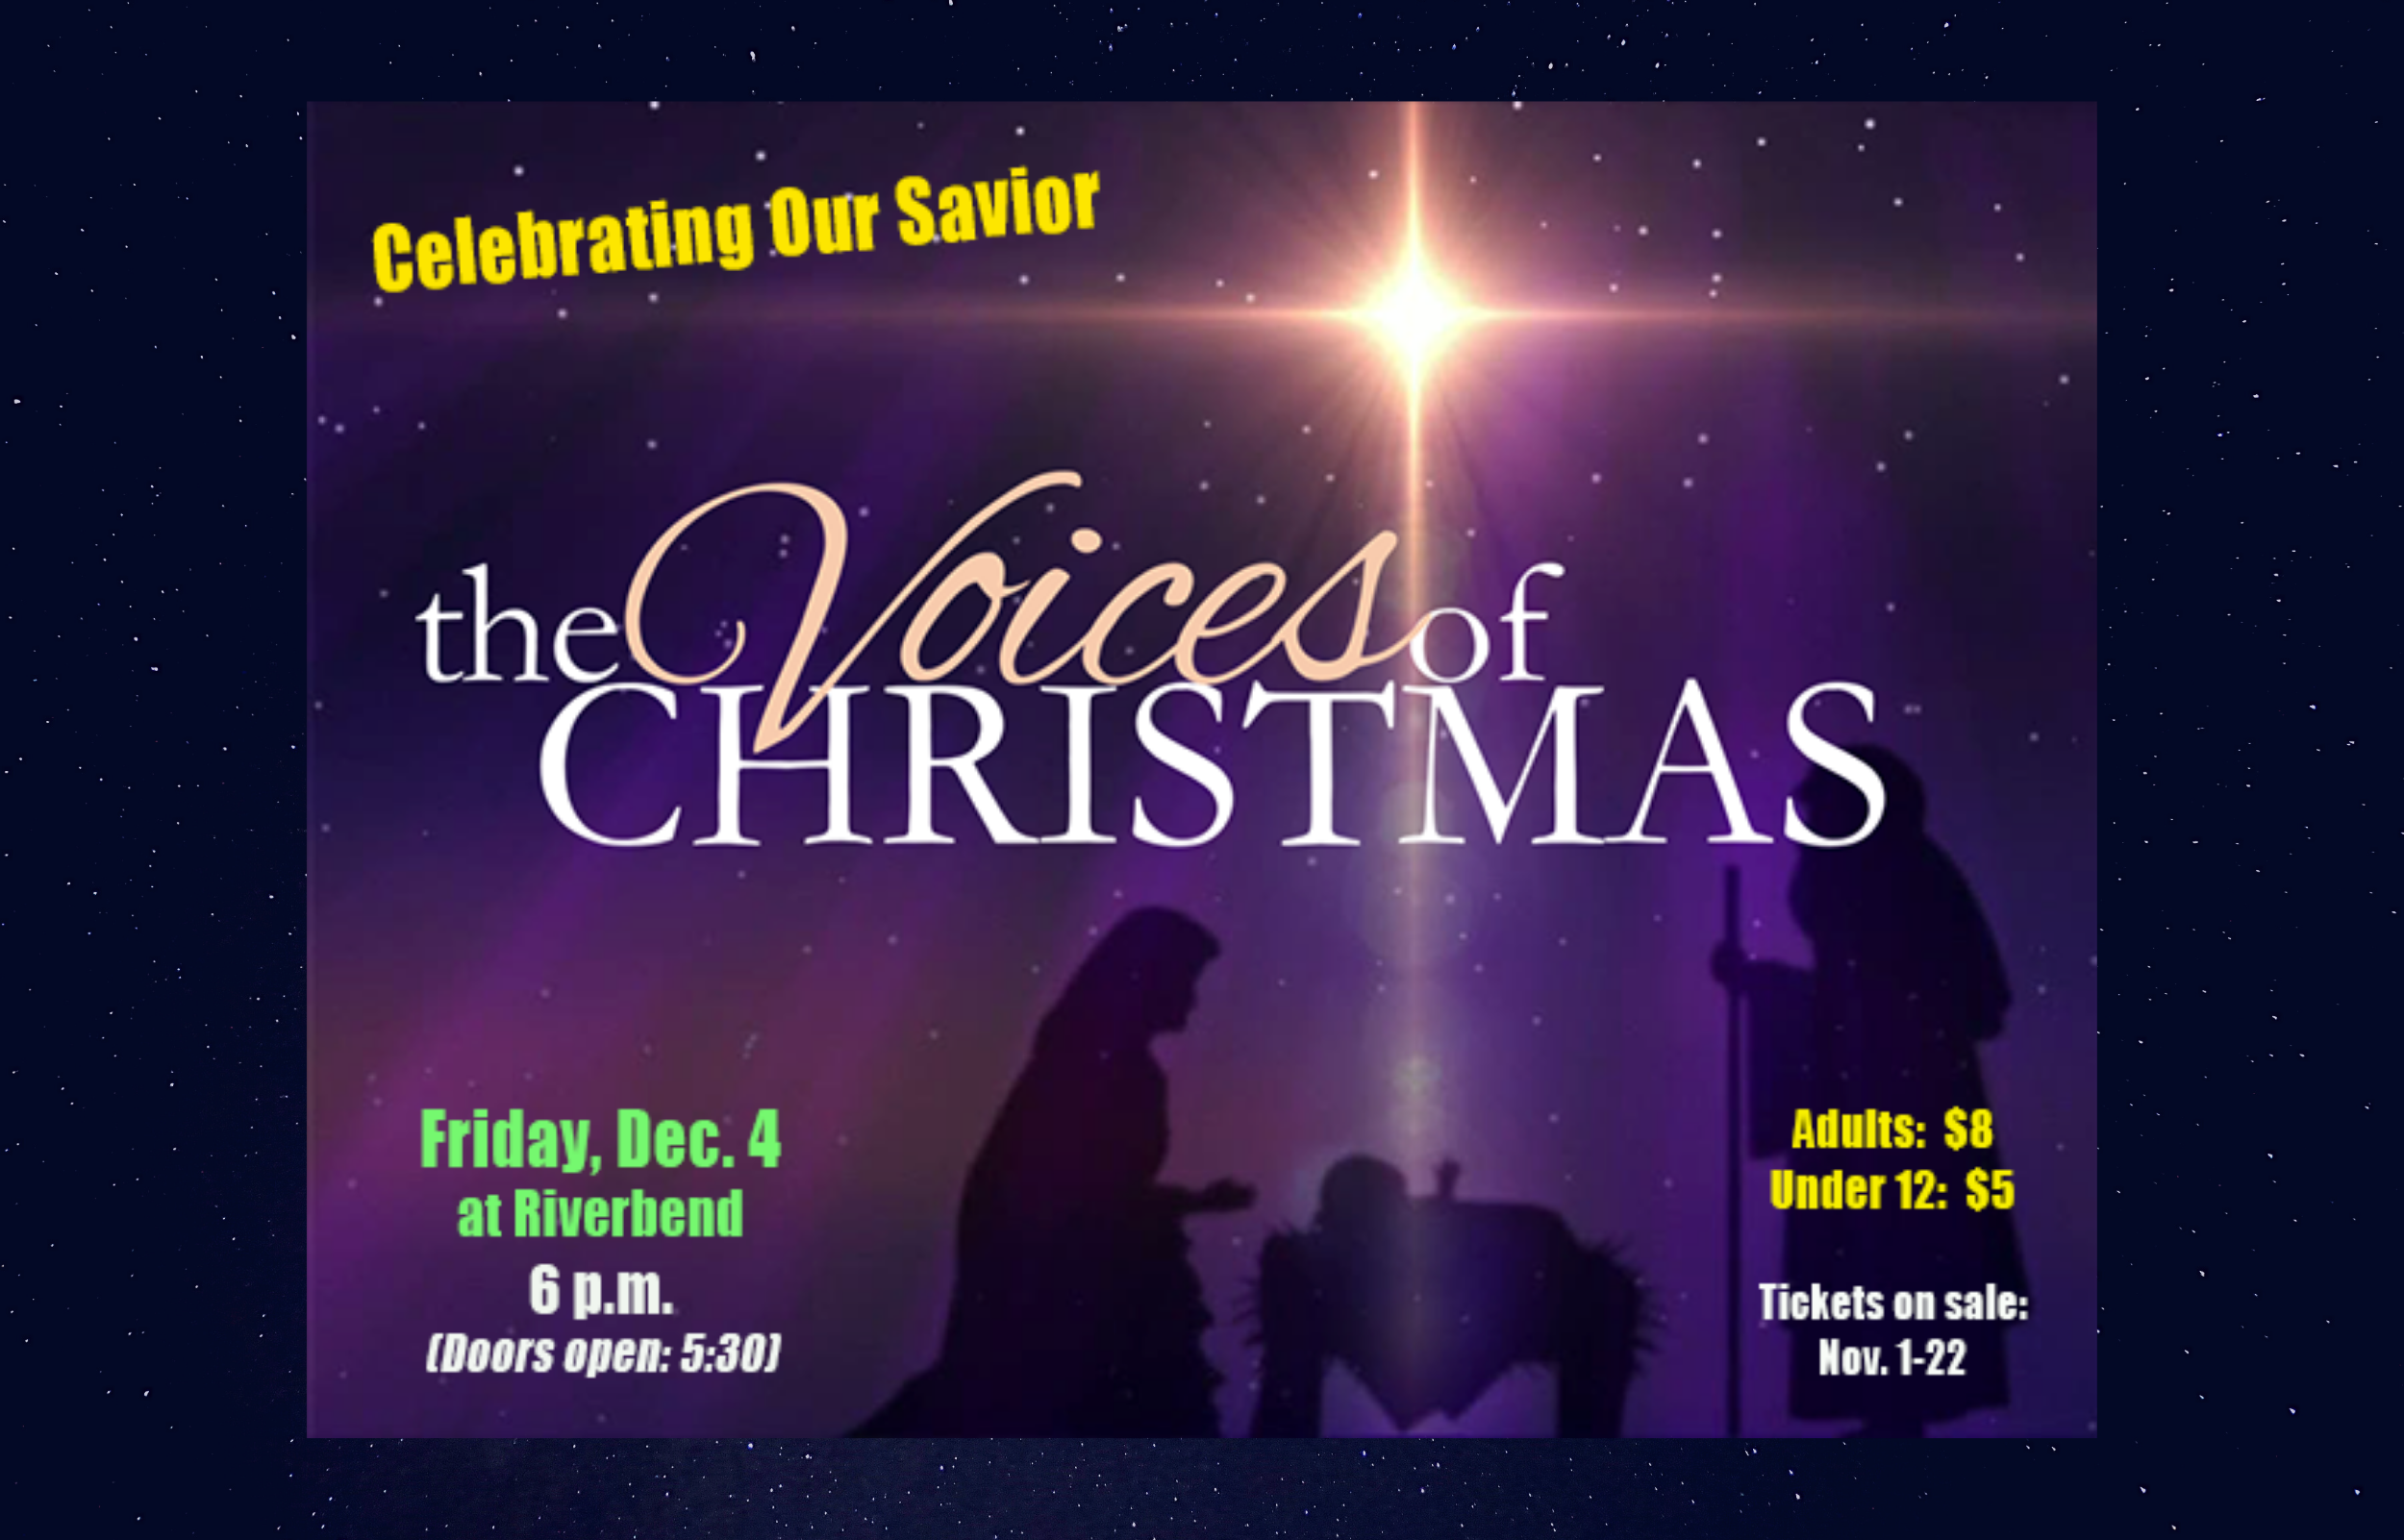 VoicesofChristmas Website image